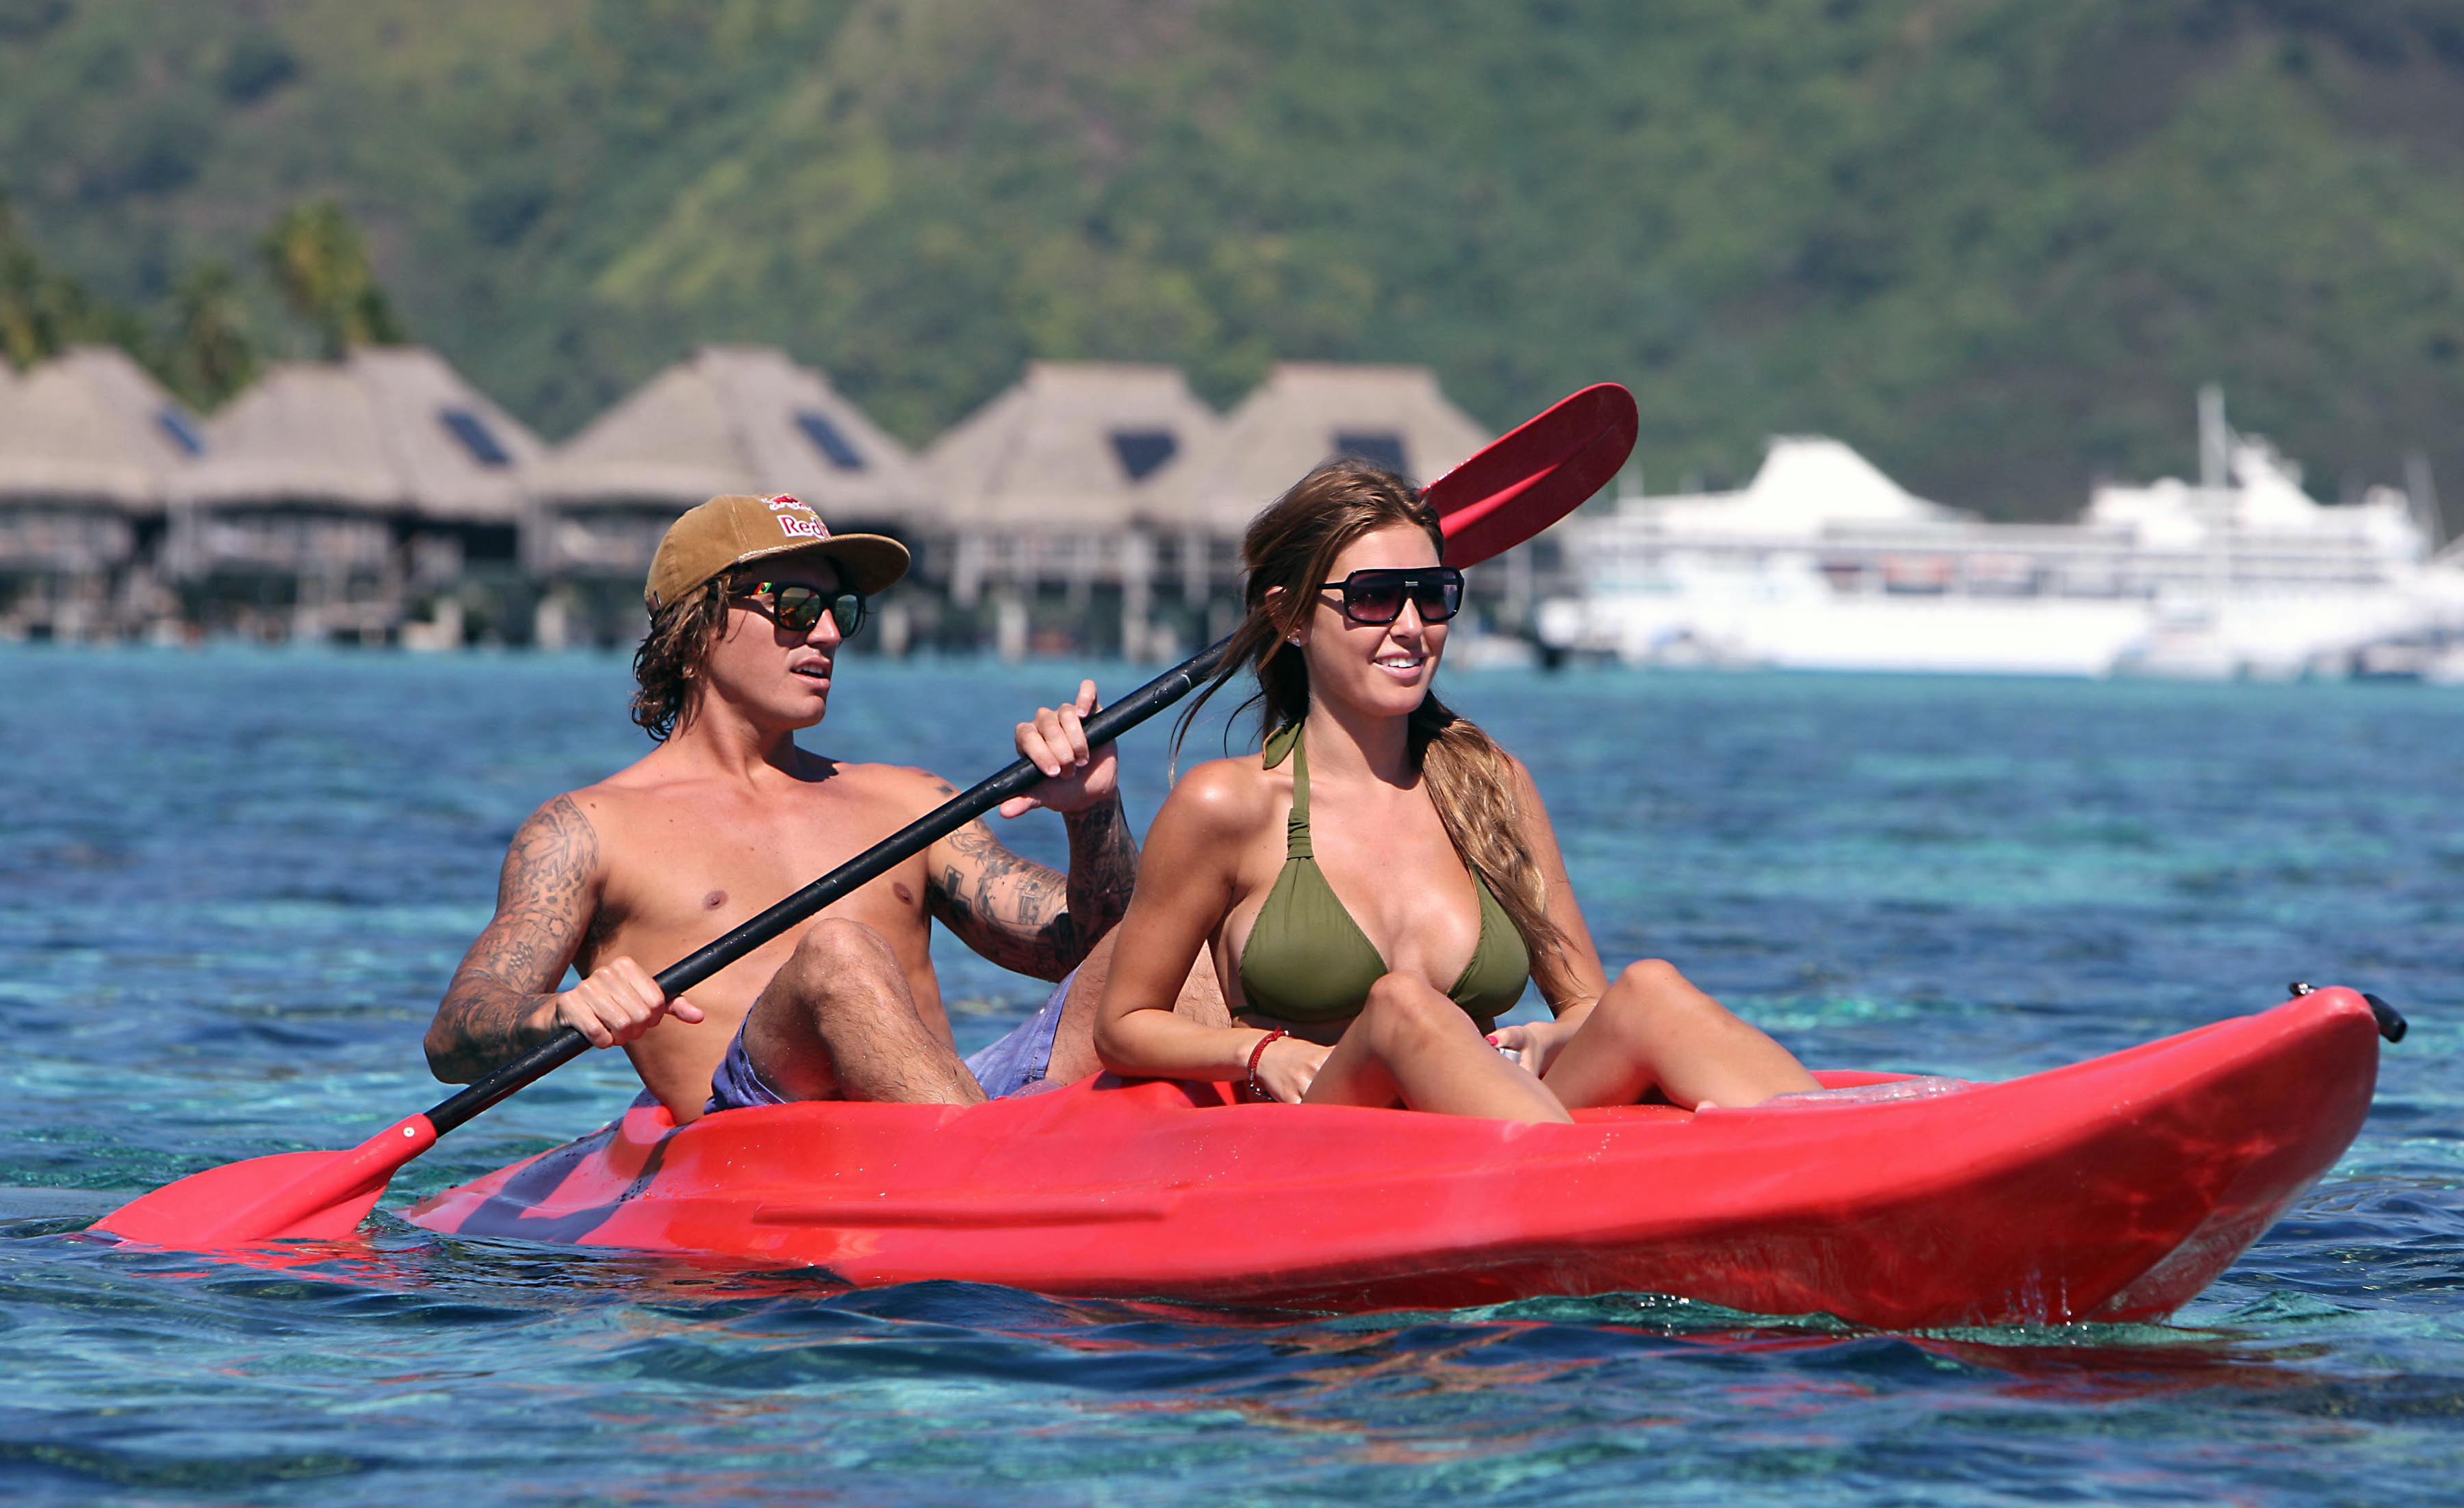 53559_Audrina_Patridge_on_a_tropical_vacation_122_223lo.jpg